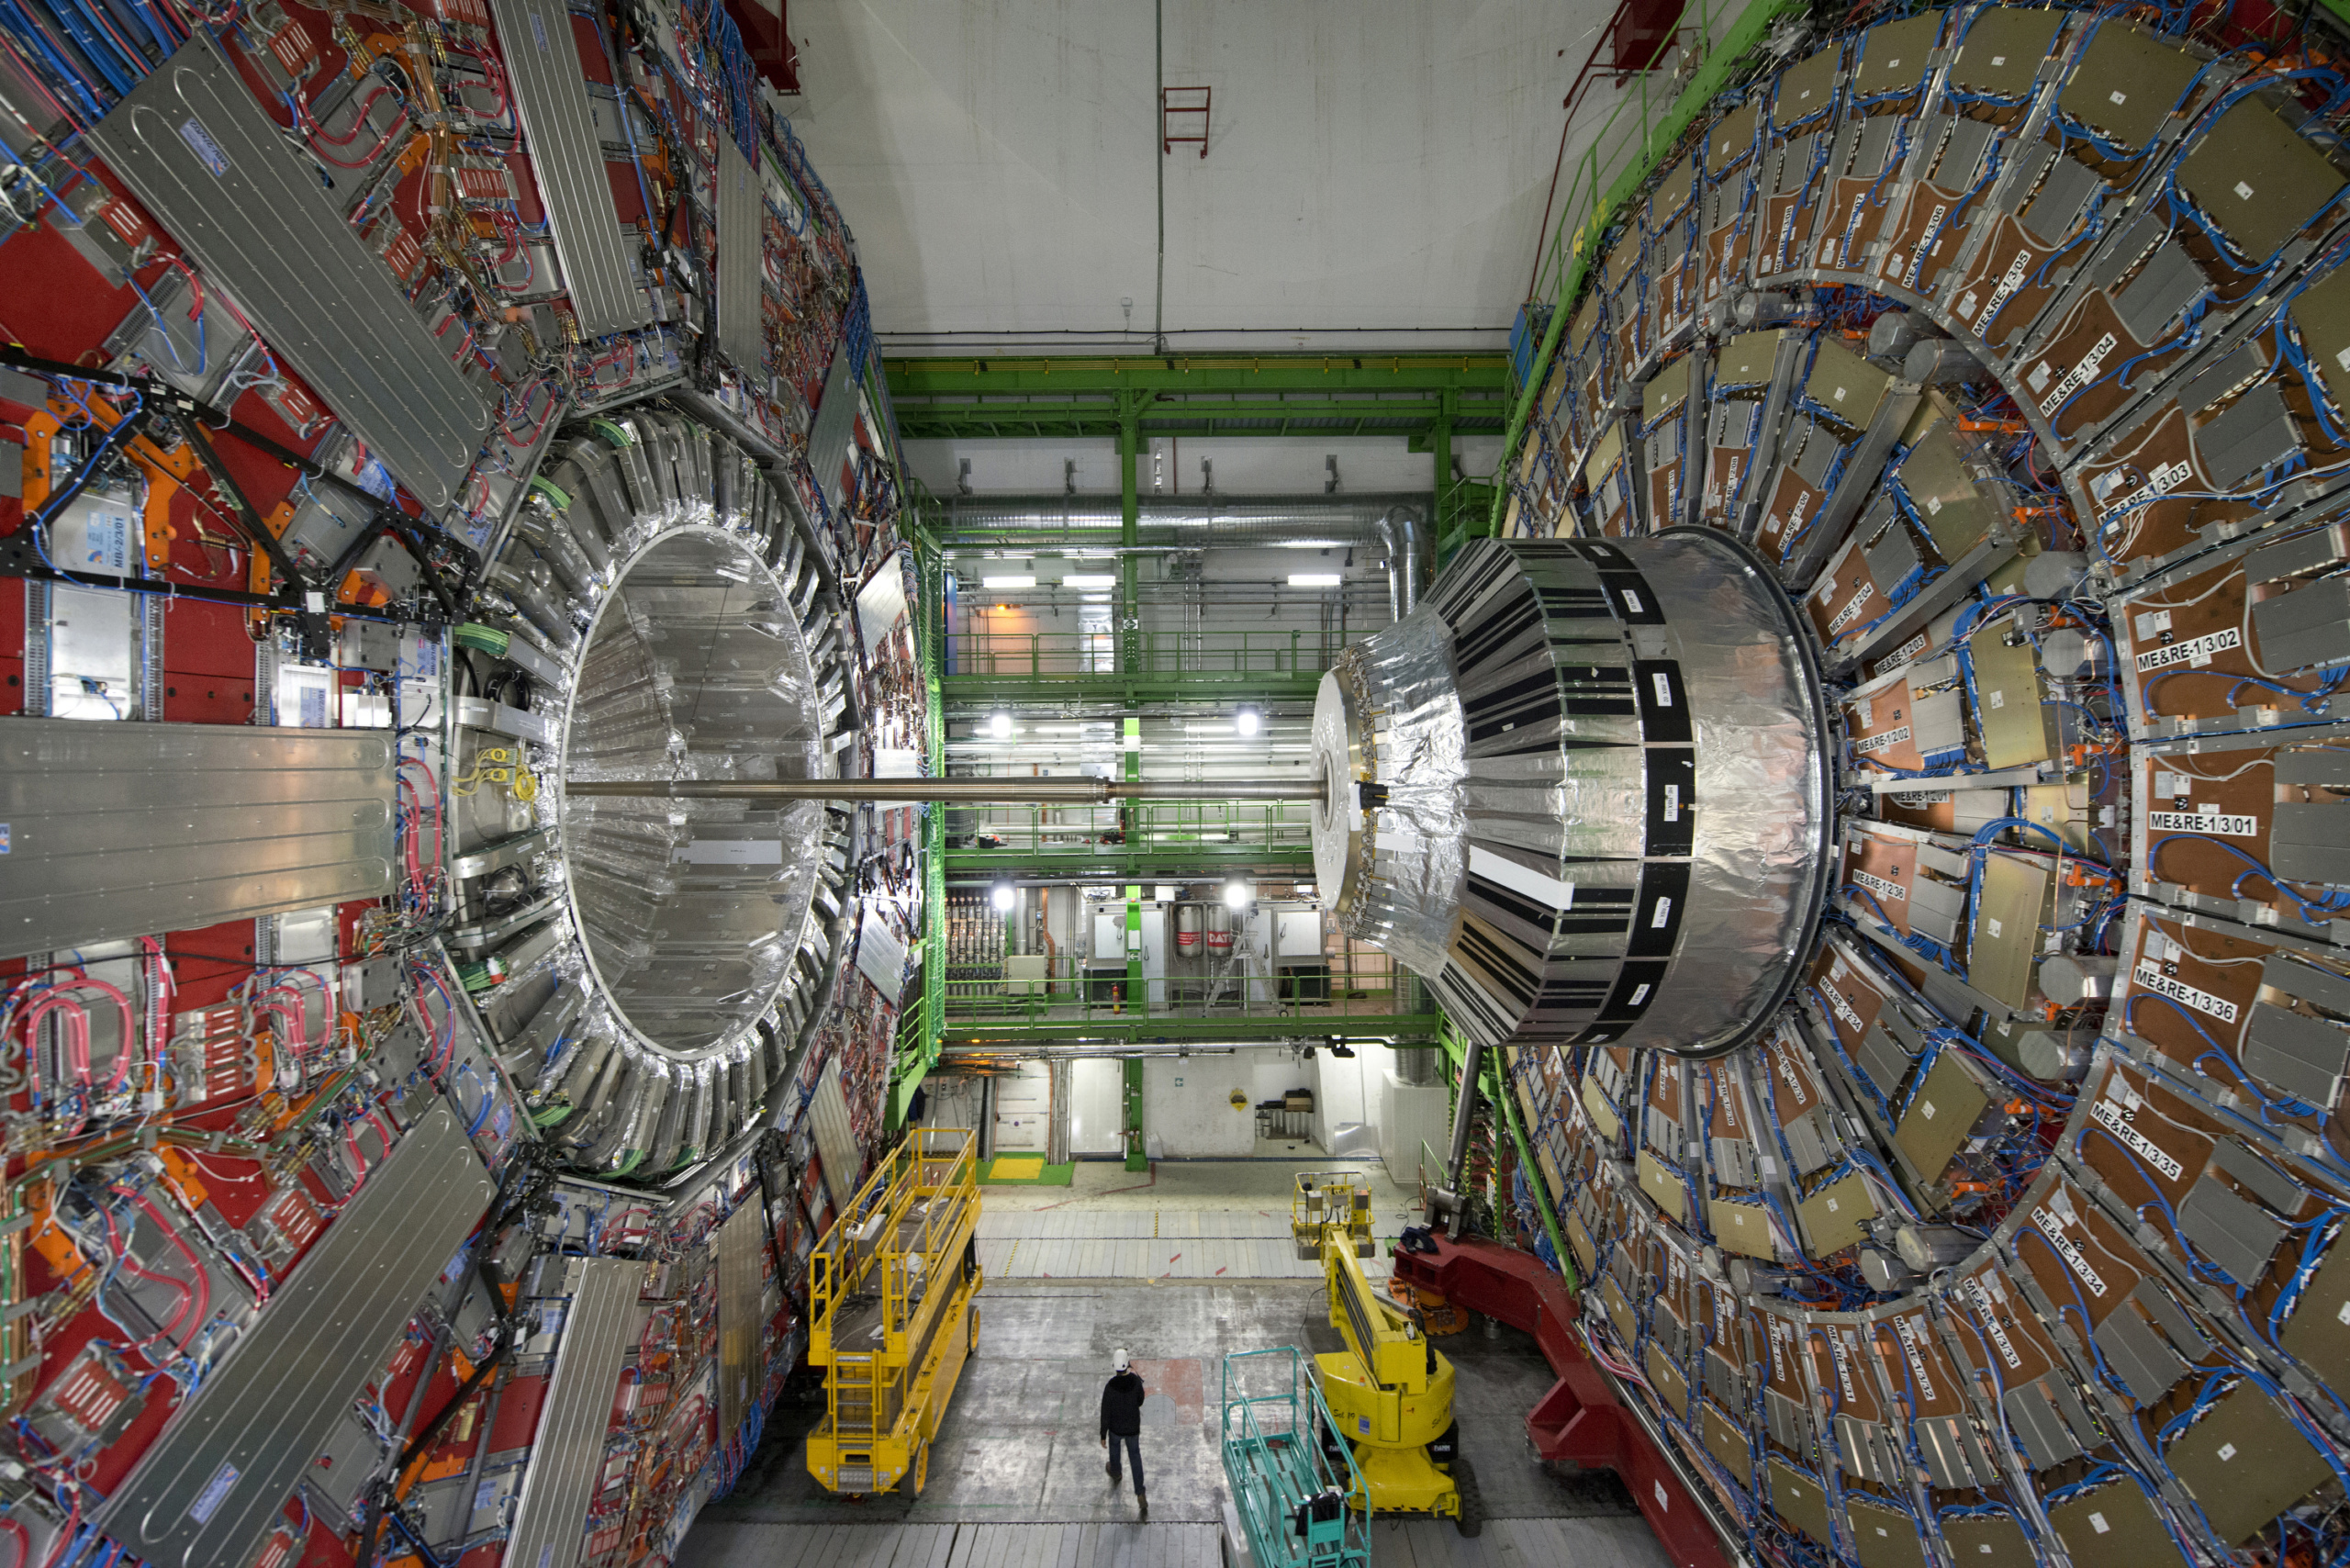 Geneva, Switzerland. A picture taken on February 10, 2015 in Meyrin, near Geneva, shows the CMS (Compact Muon Solenoid) Cavern at the European Organisation for Nuclear Research (CERN). Excitement is mounting at the world's largest proton smasher, where scientists are close to launching a superpowered hunt for particles that may change our understanding of the Universe. Physicists and engineers are running the final checks on an upgrade that nearly doubled the muscle of the Large Hadron Collider (LHC), which in 2012 unlocked the putative Higgs boson and, with it, a Nobel Prize. The two-year power boost will take experiments into a previously-inaccessible realm that resembles science fiction. AFP PHOTO / RICHARD JUILLIART (Photo credit should read Richard Juilliart/AFP/Getty Images)